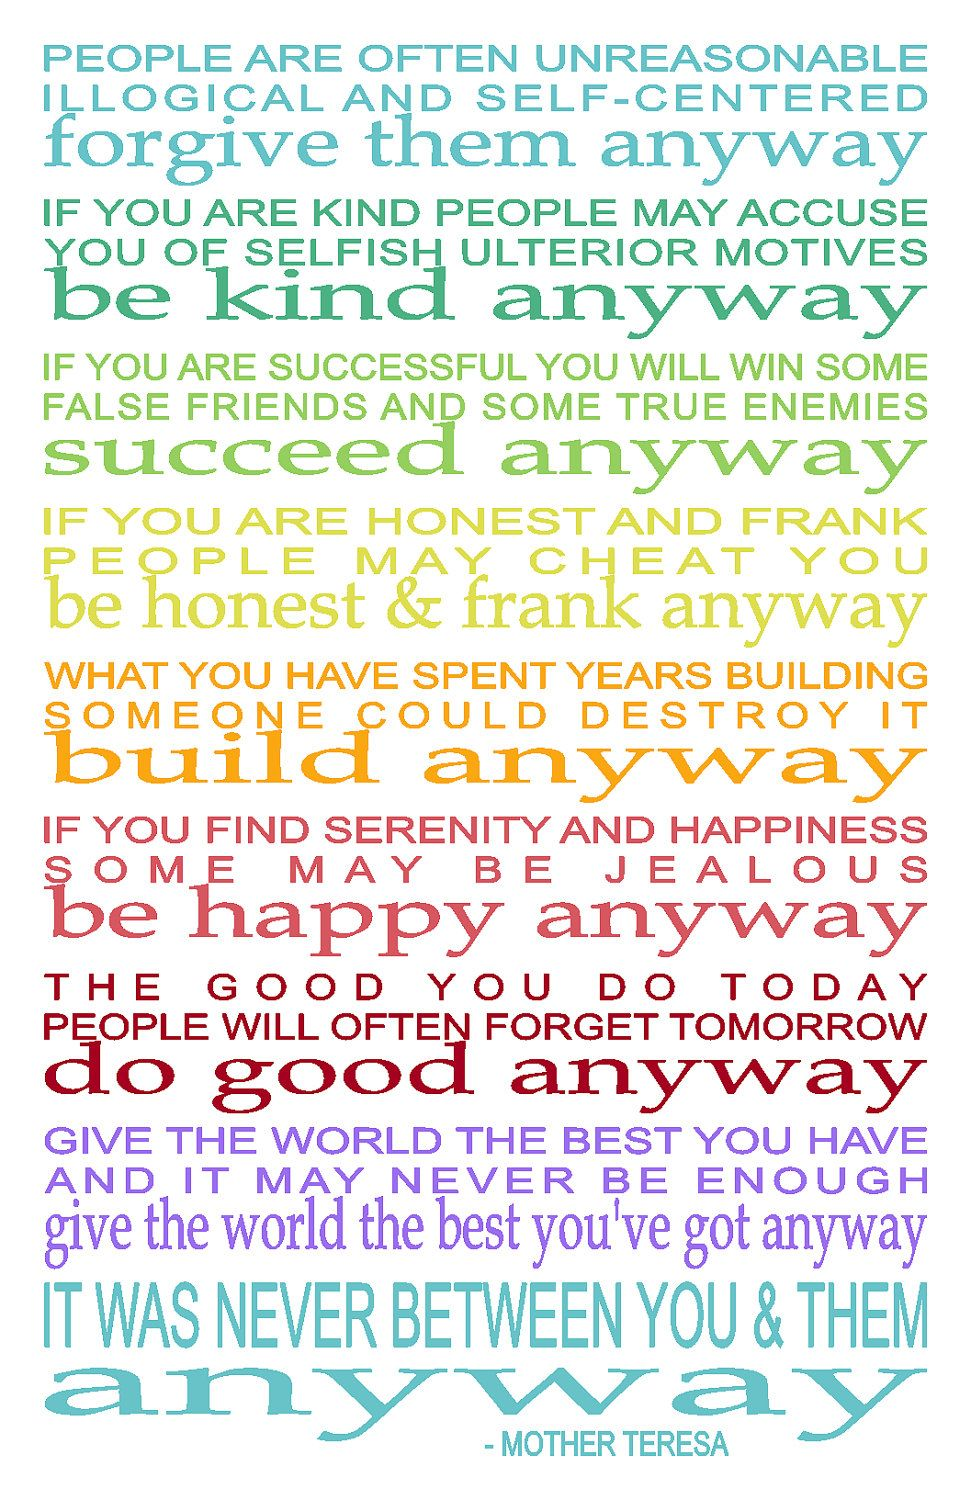 Do it anyway 11 x 17 inspirational print mother teresa typography do it anyway 11 x 17 inspirational print mother teresa typography wall art poster print multi color teal yellow orange and more 2400 via etsy thecheapjerseys Gallery